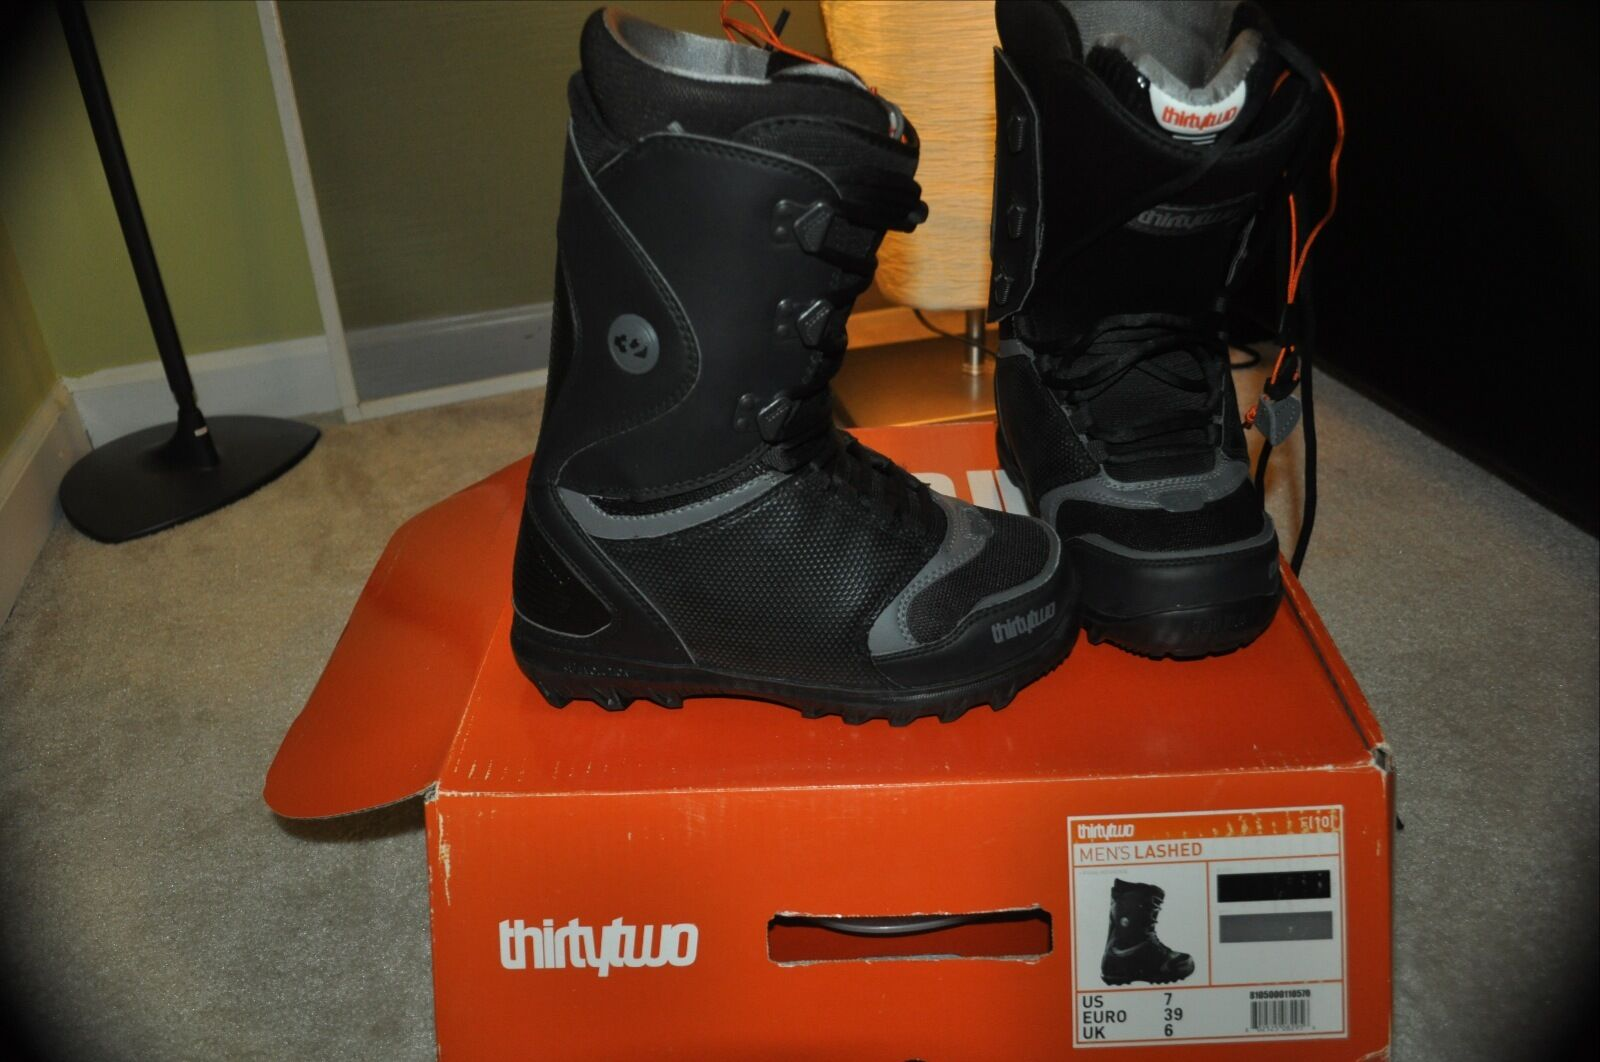 32 Lashed 2011 Snowboard Boots US 7